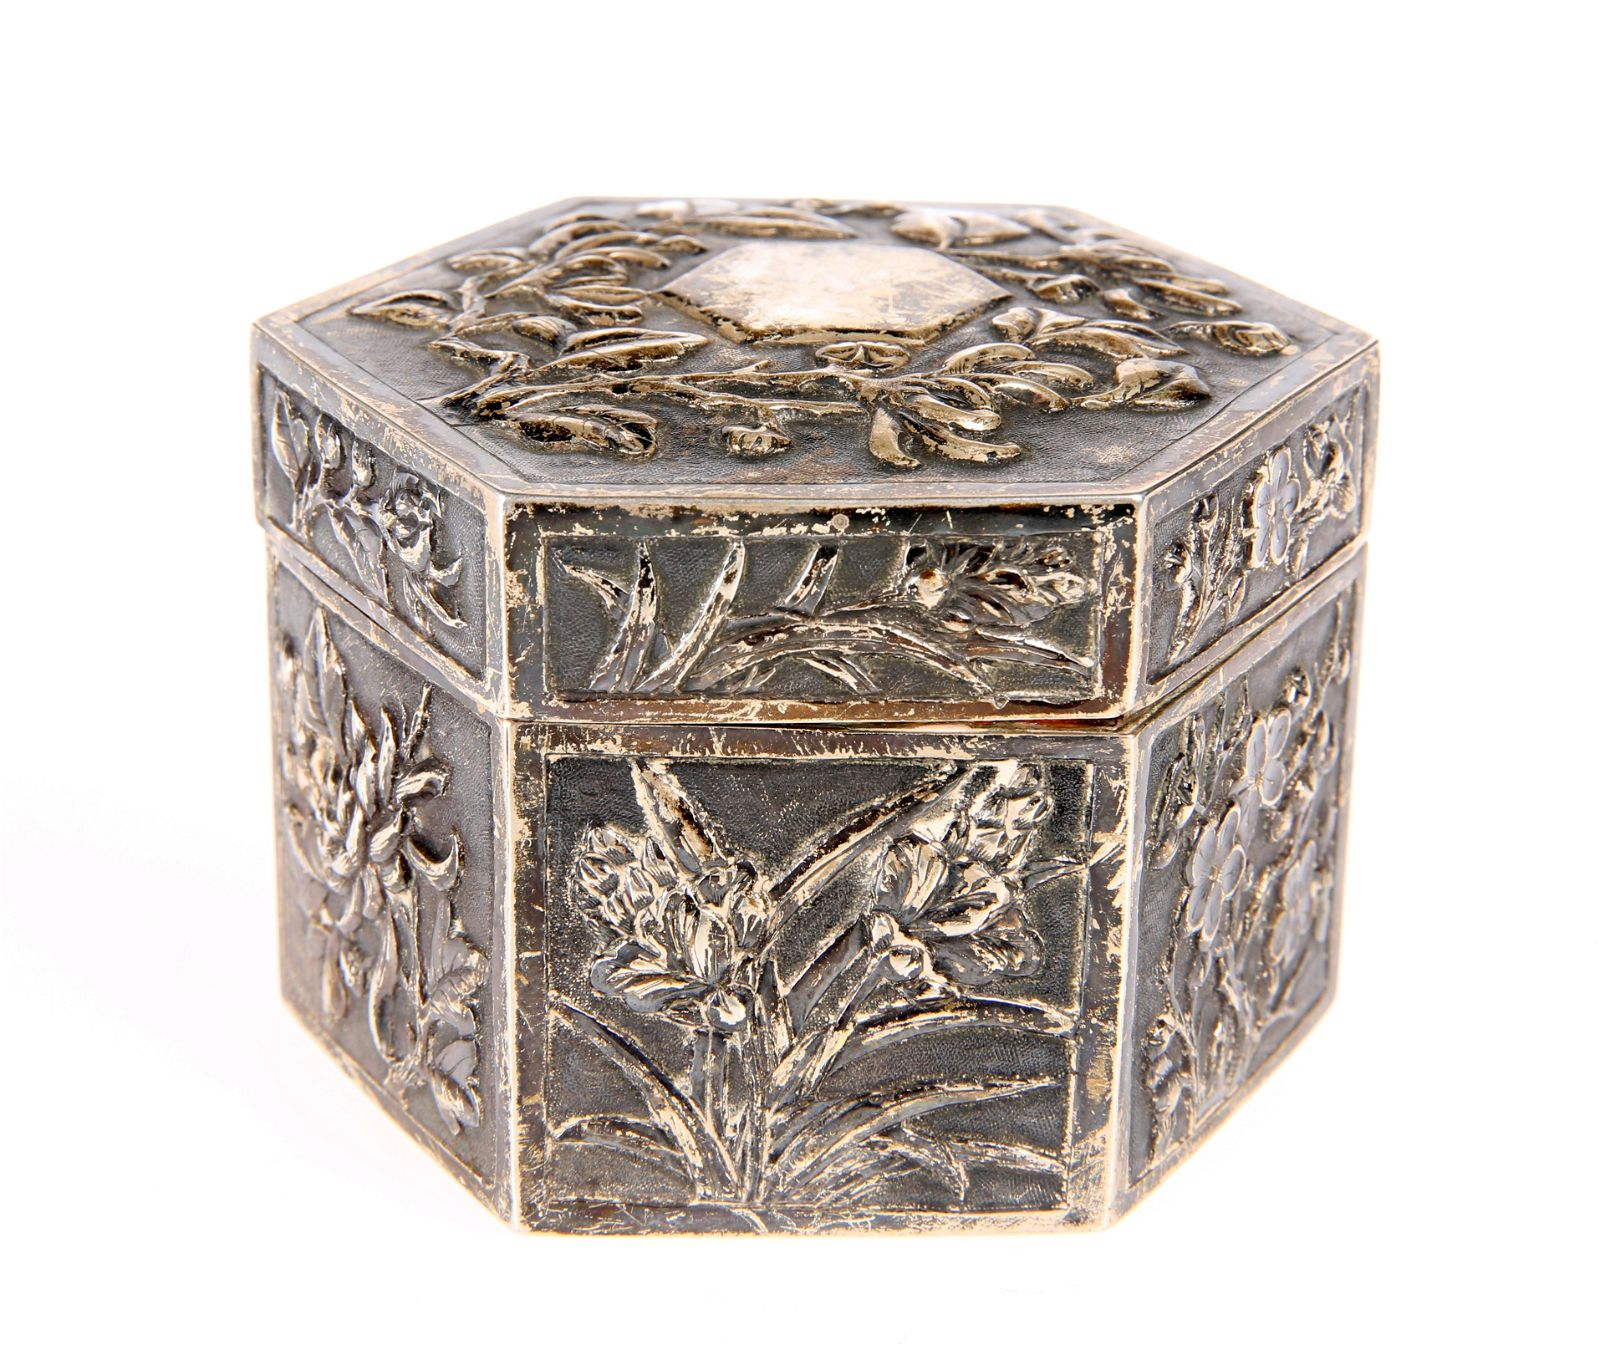 A CHINESE SILVER BOX AND COVER, CANTON, CIRCA 1880,